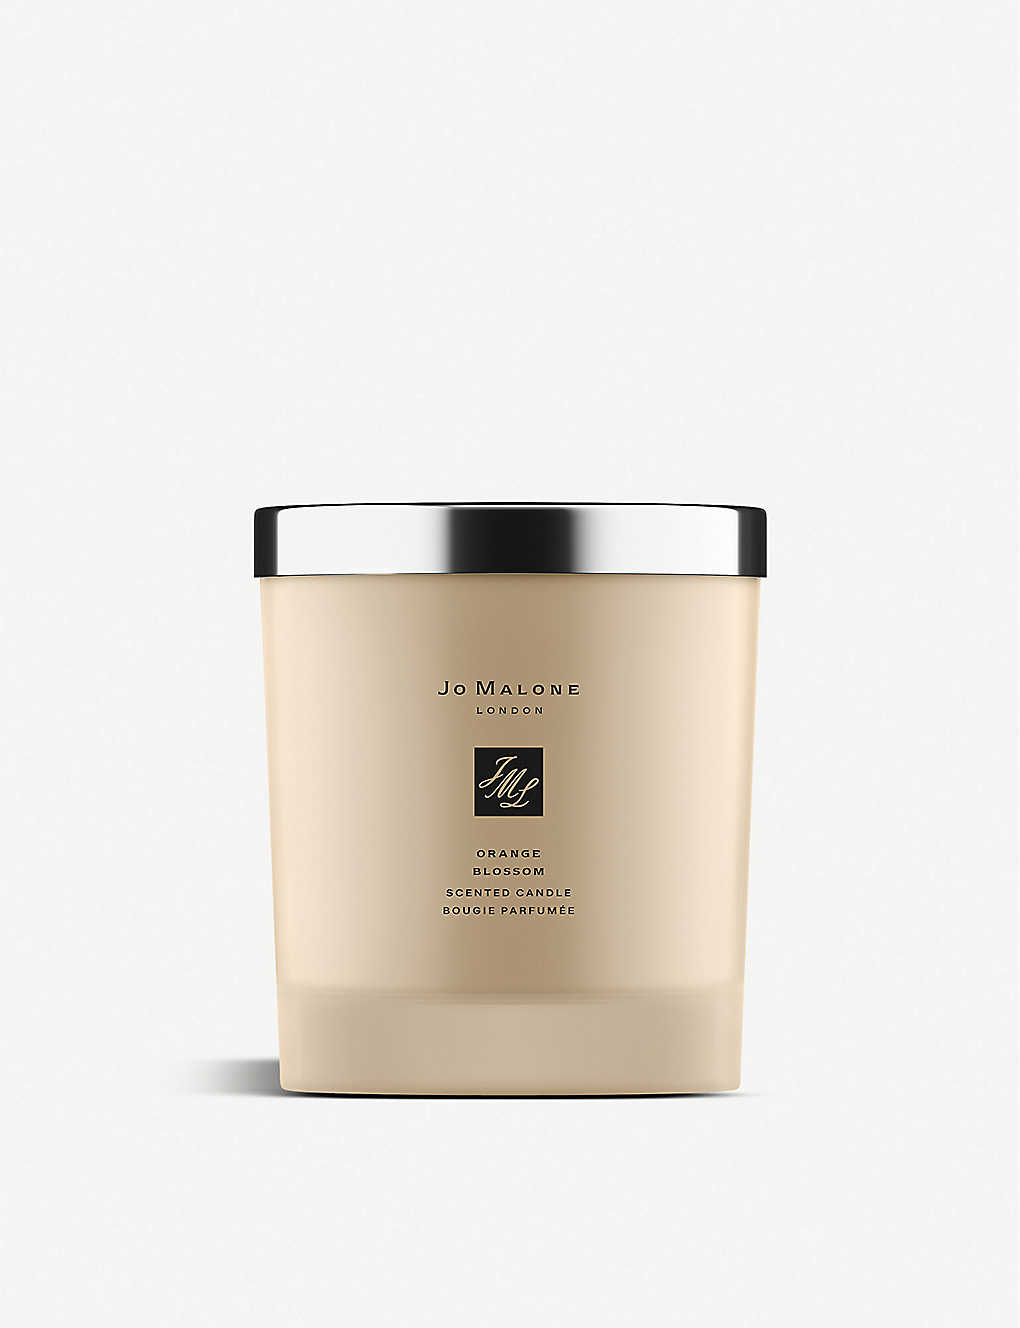 JO MALONE LONDON: Orange Blossom scented candle 200g